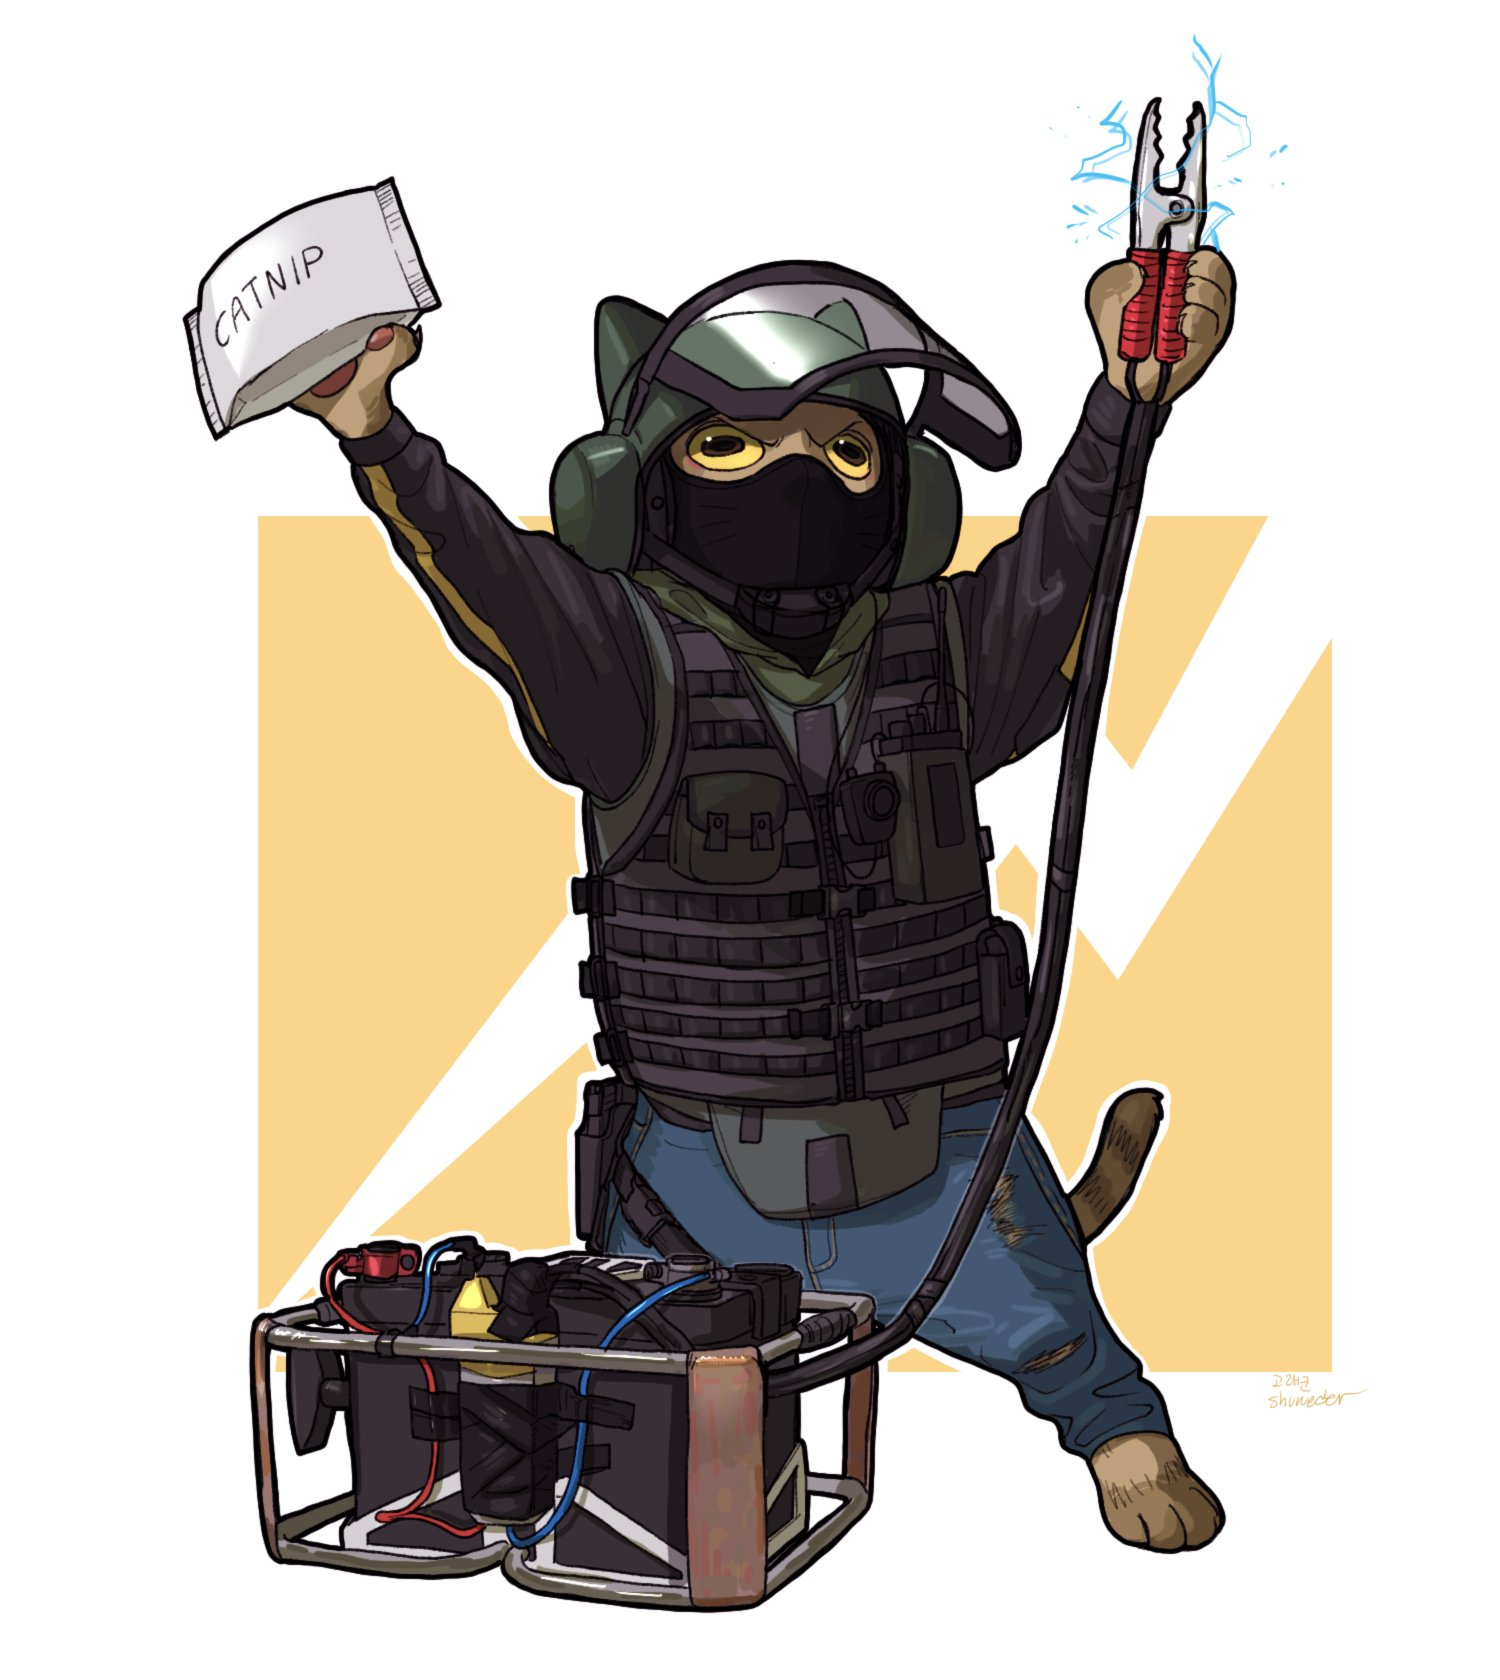 Rainbow six siege on twitter the meowperators are back - R6 siege echo ...